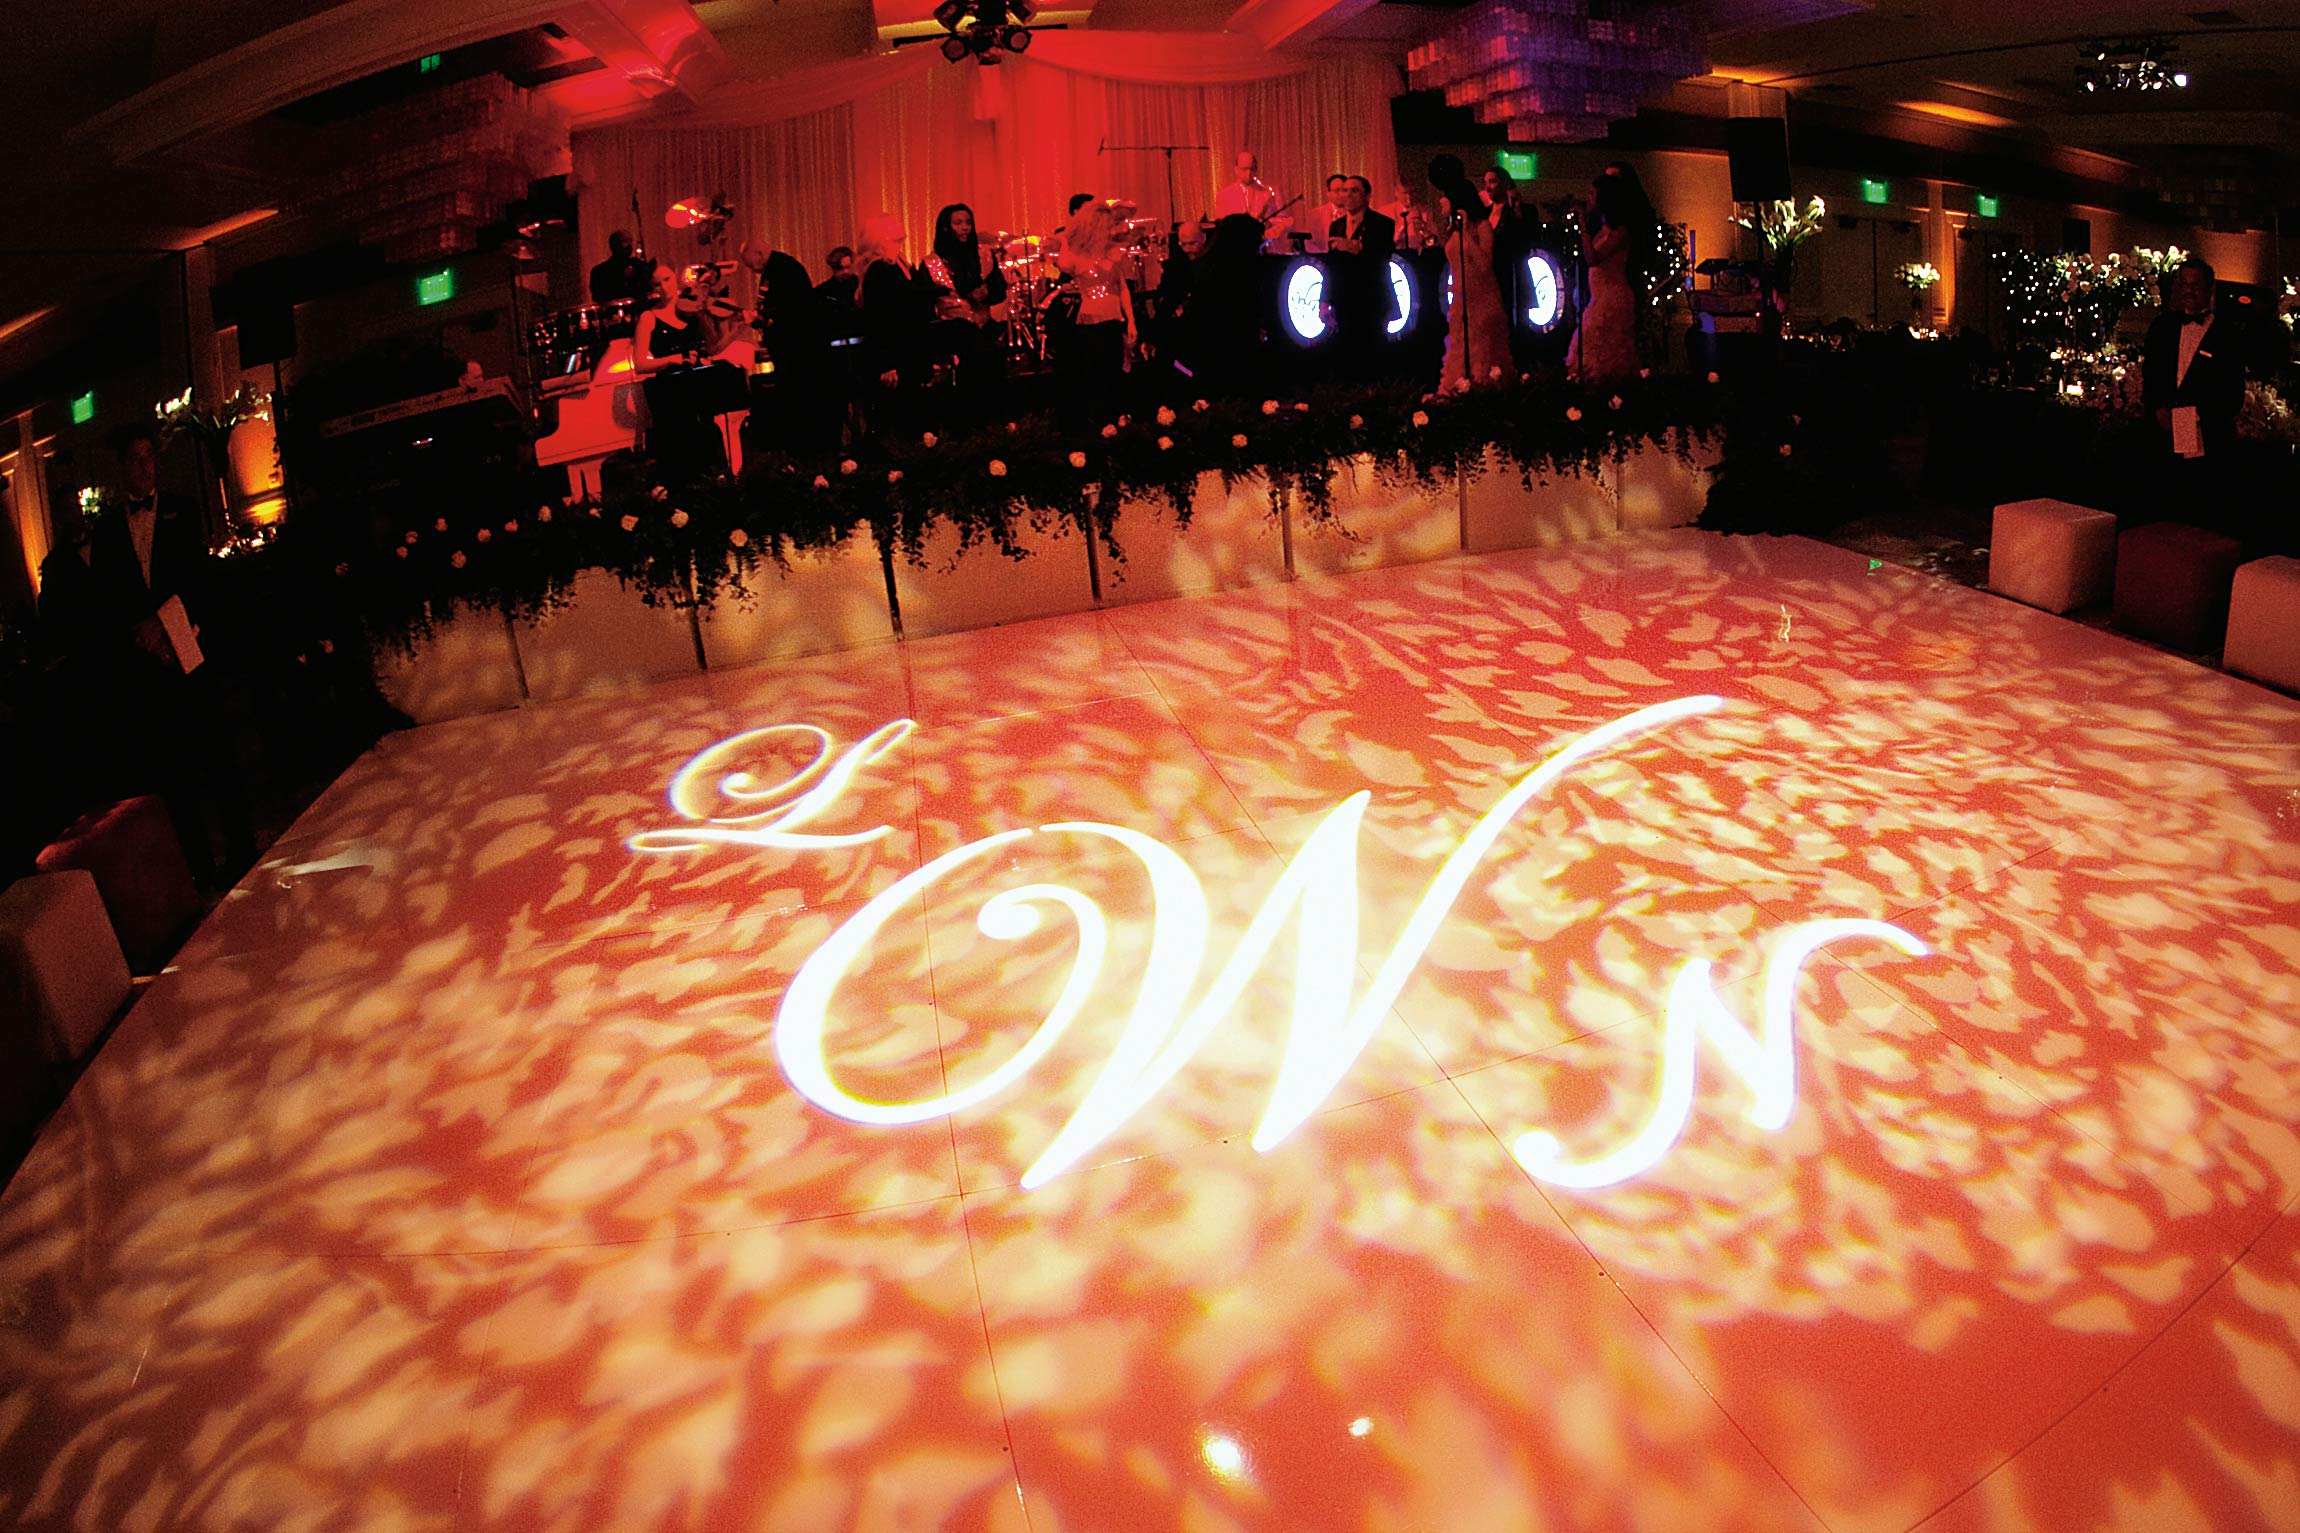 light projection of leaf pattern and monogram on dance floor at wedding reception